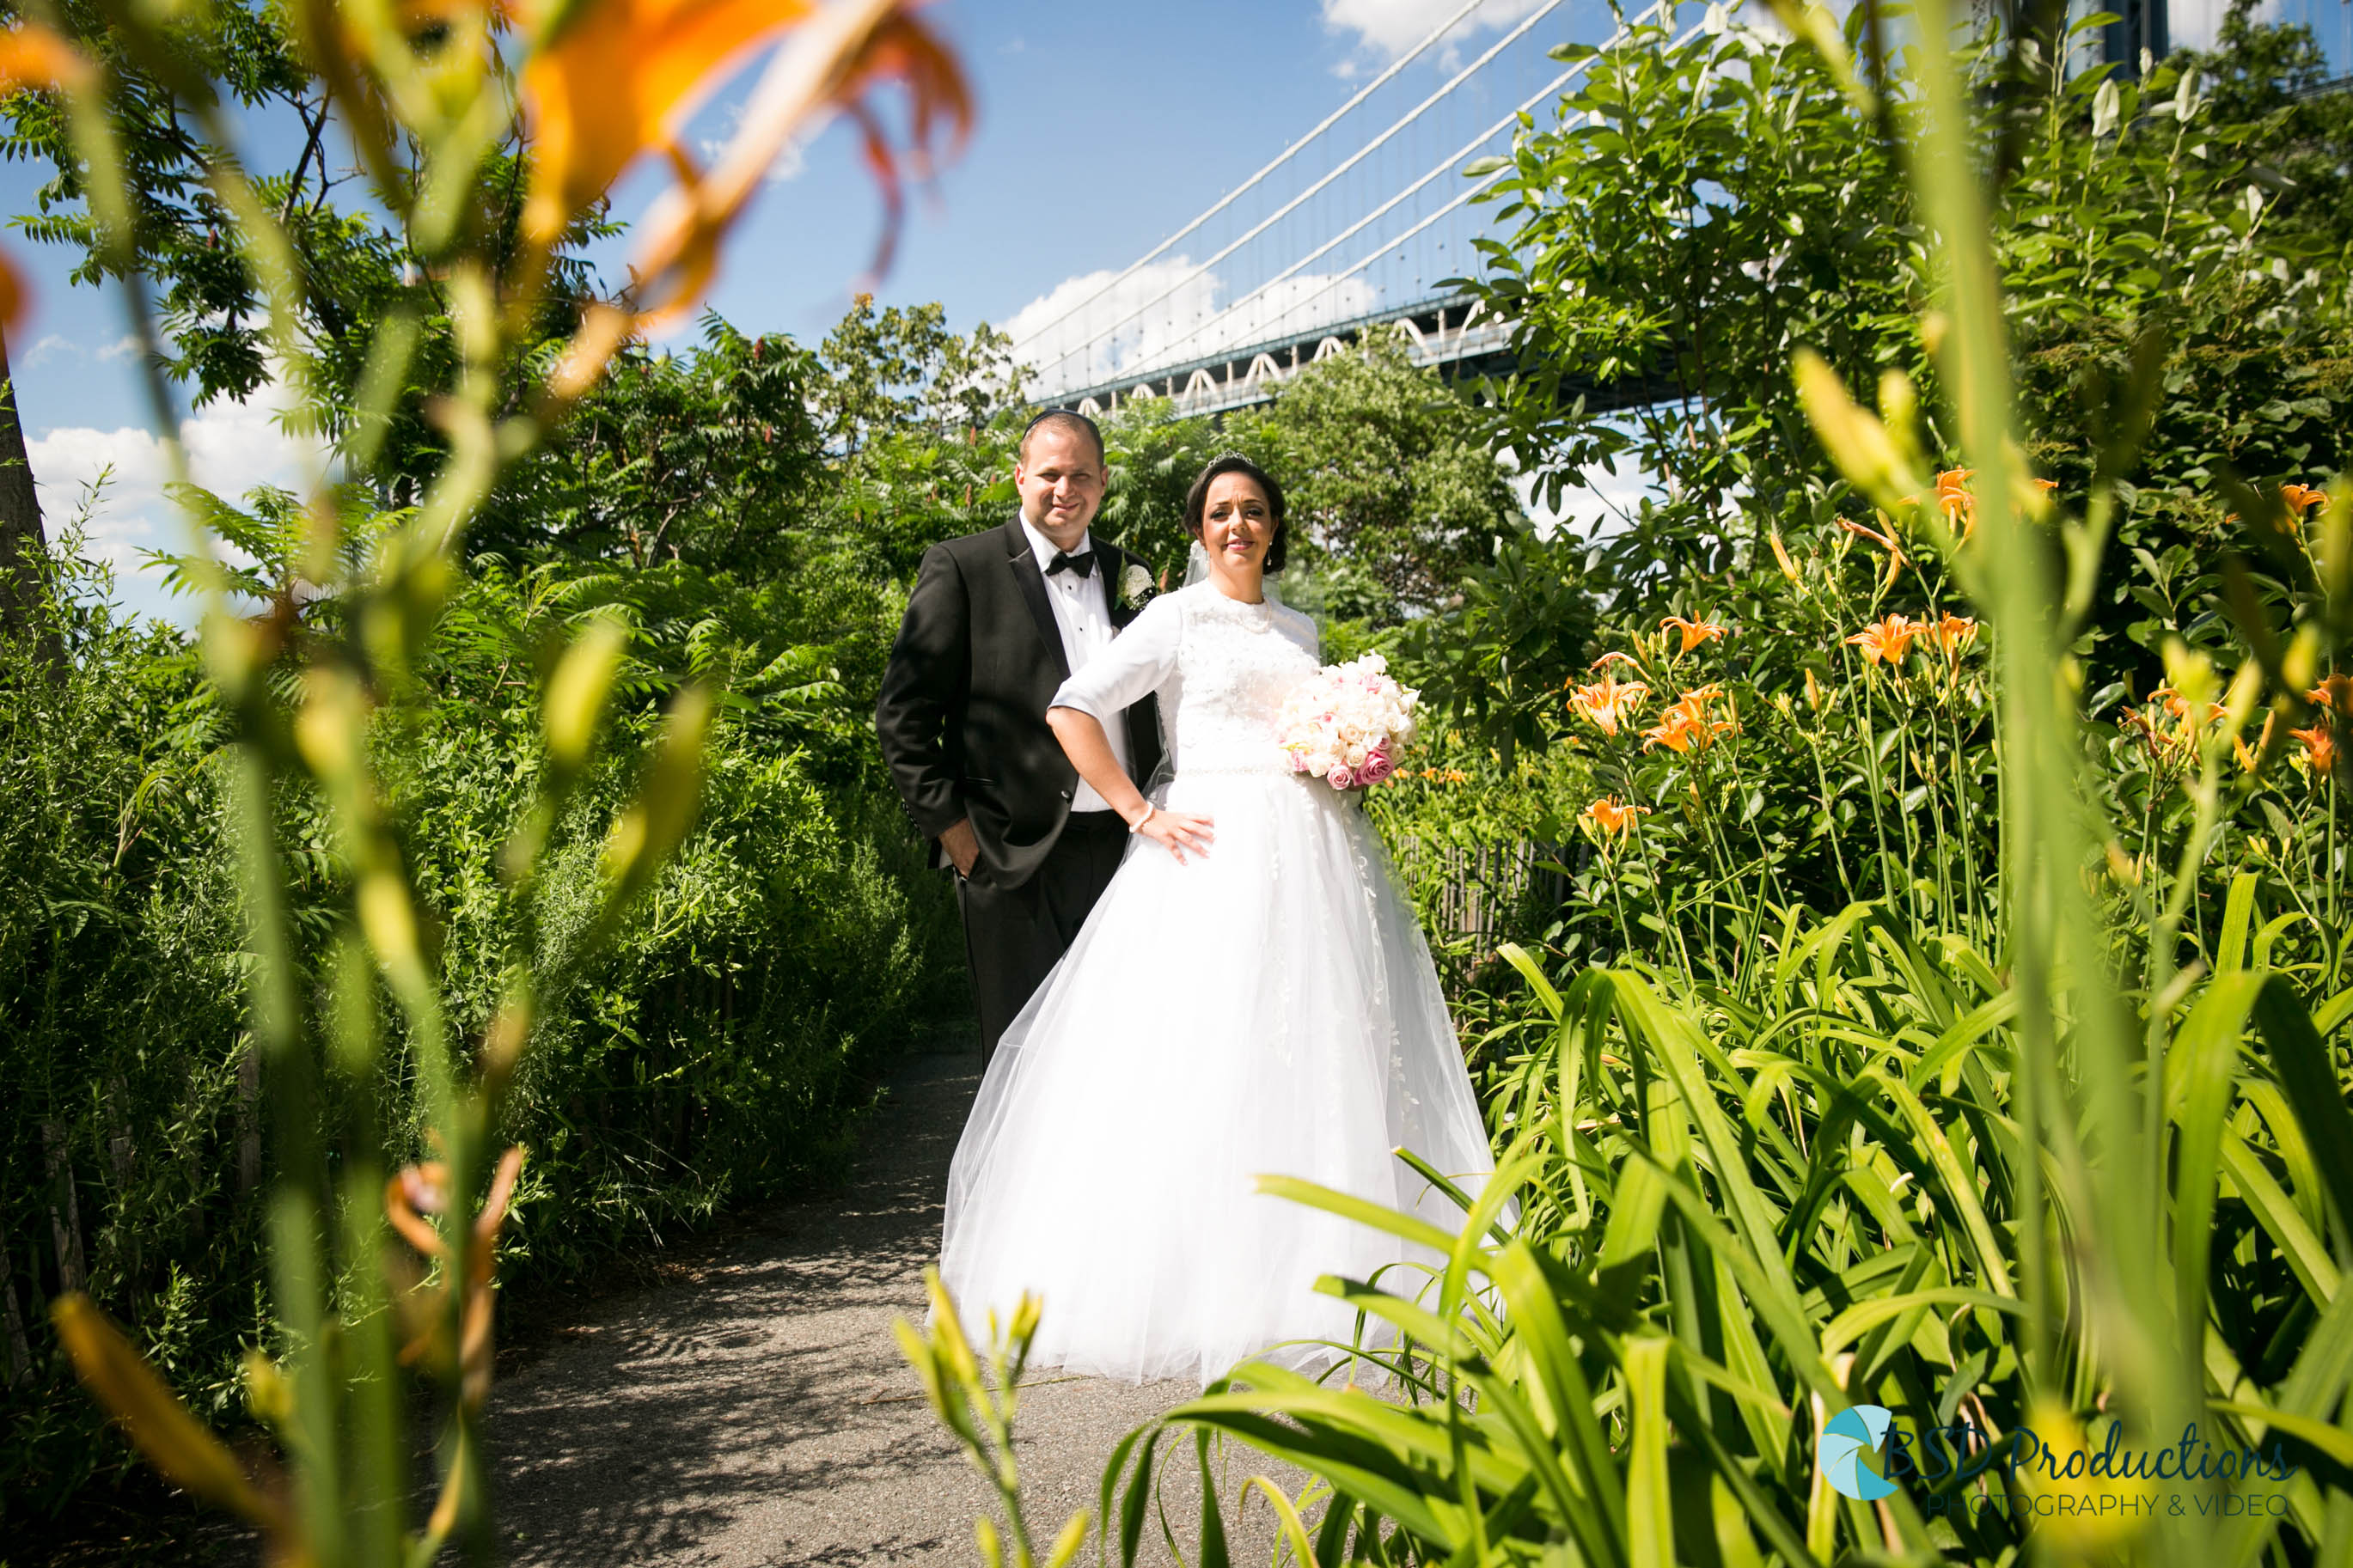 UH5A0254 Wedding – BSD Productions Photography